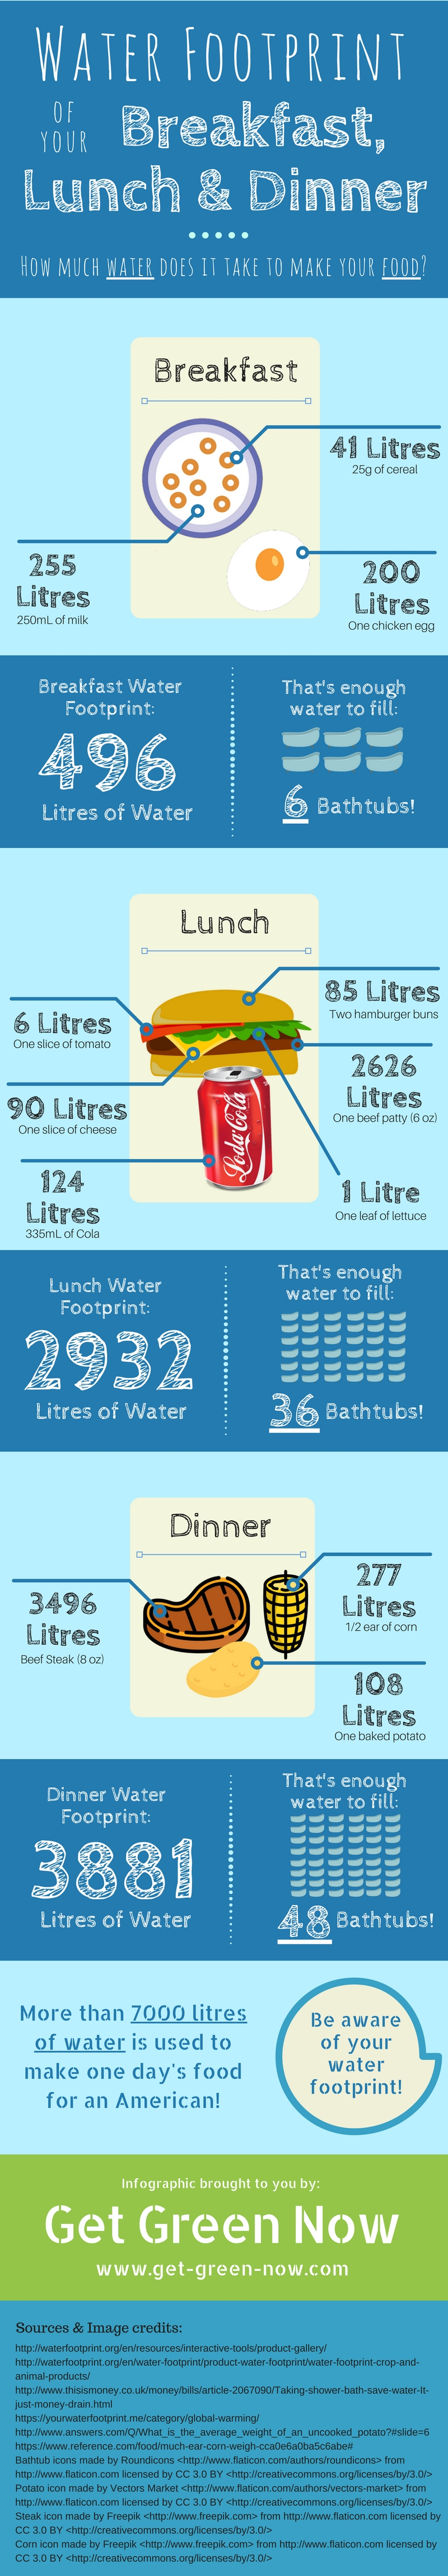 Water footprint of food infographic